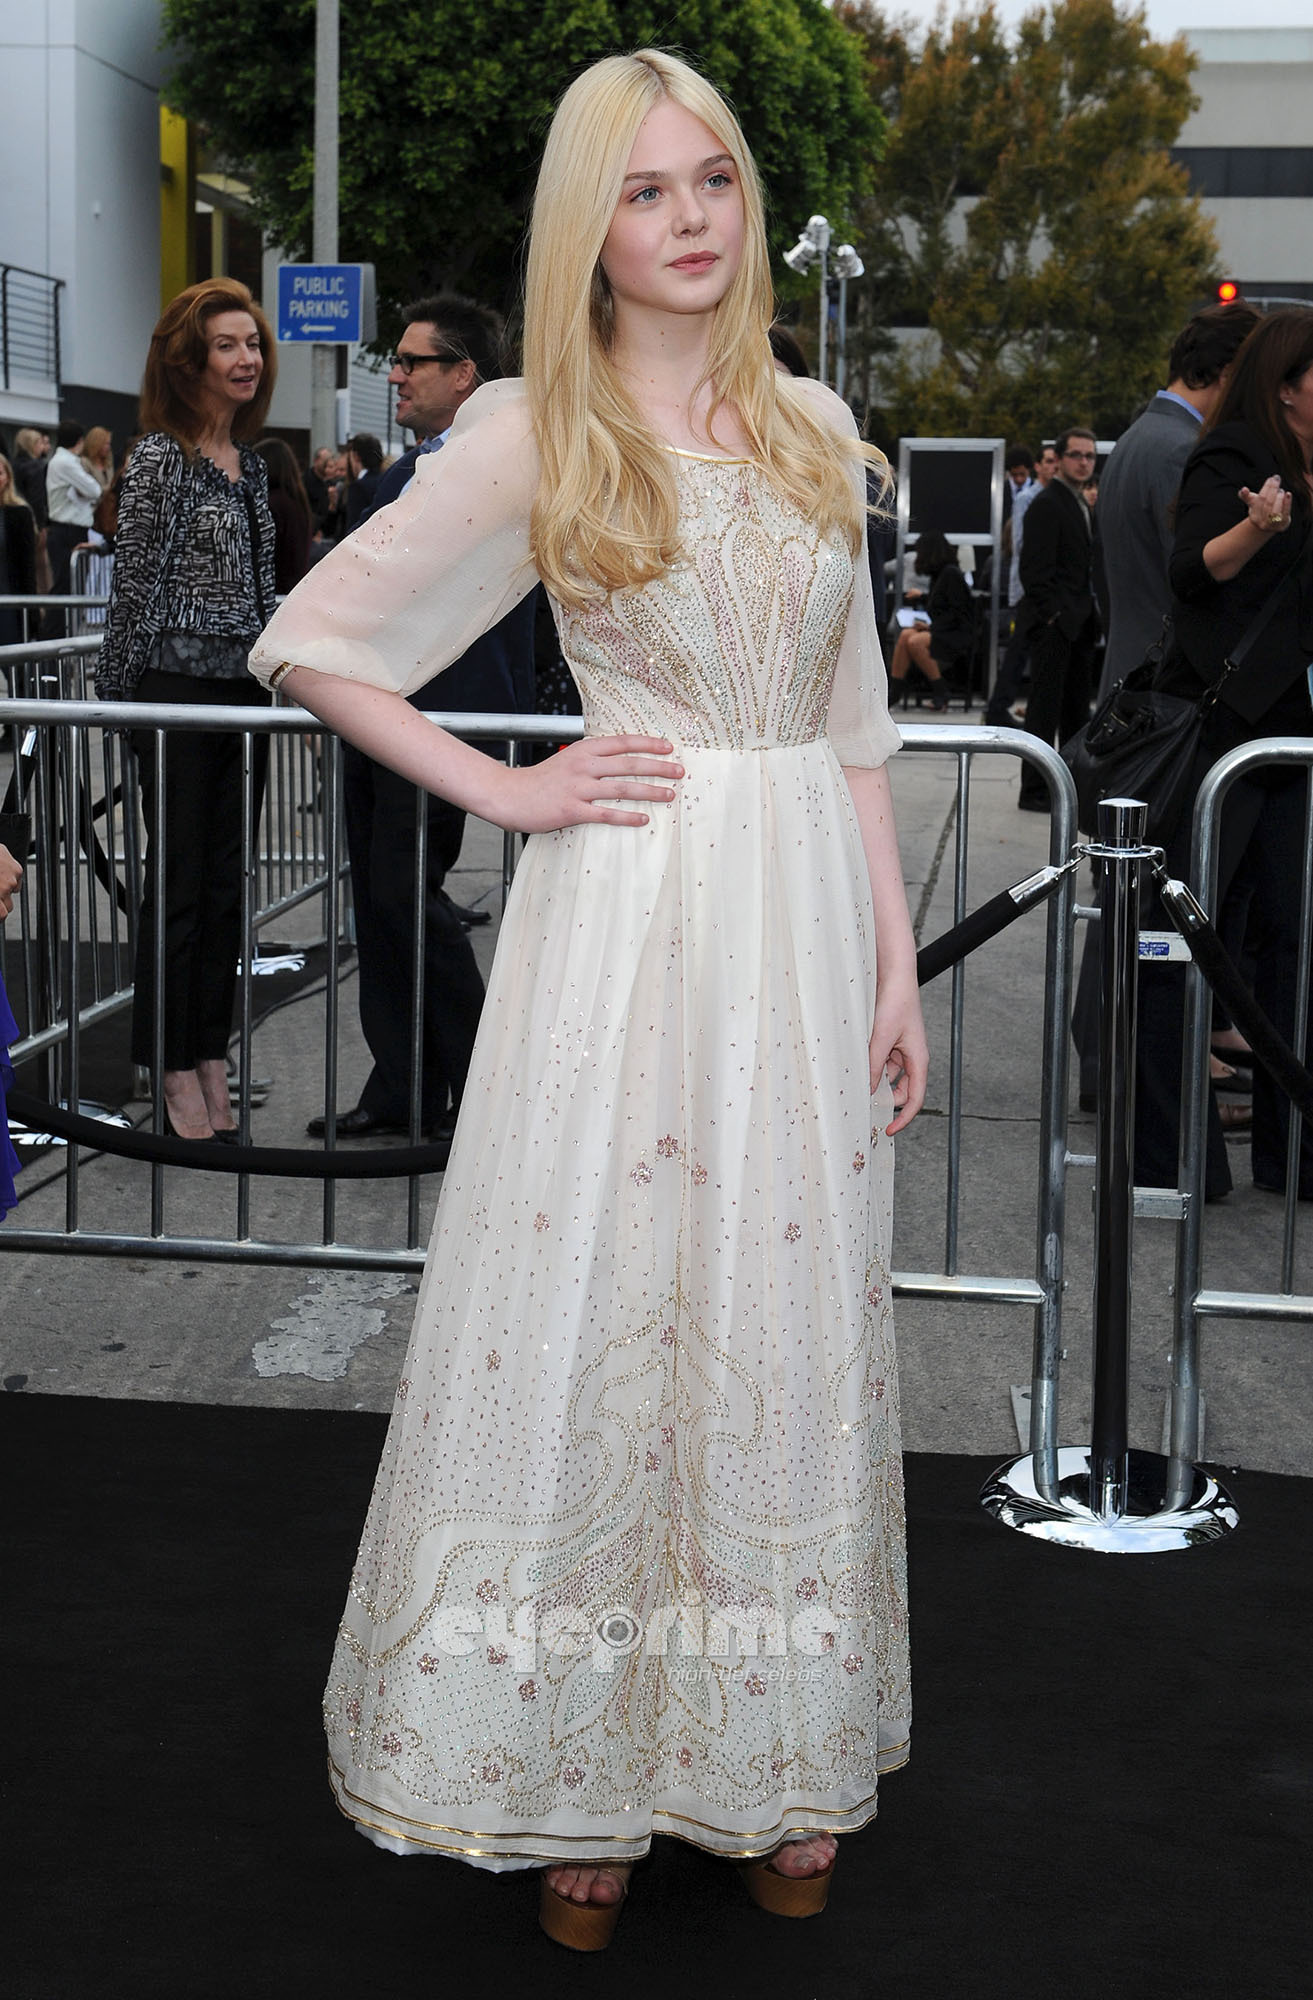 Elle Fanning HQ http://www.fanpop.com/clubs/elle-fanning/images/22726181/title/super-8-los-angeles-premiere-hq-photo